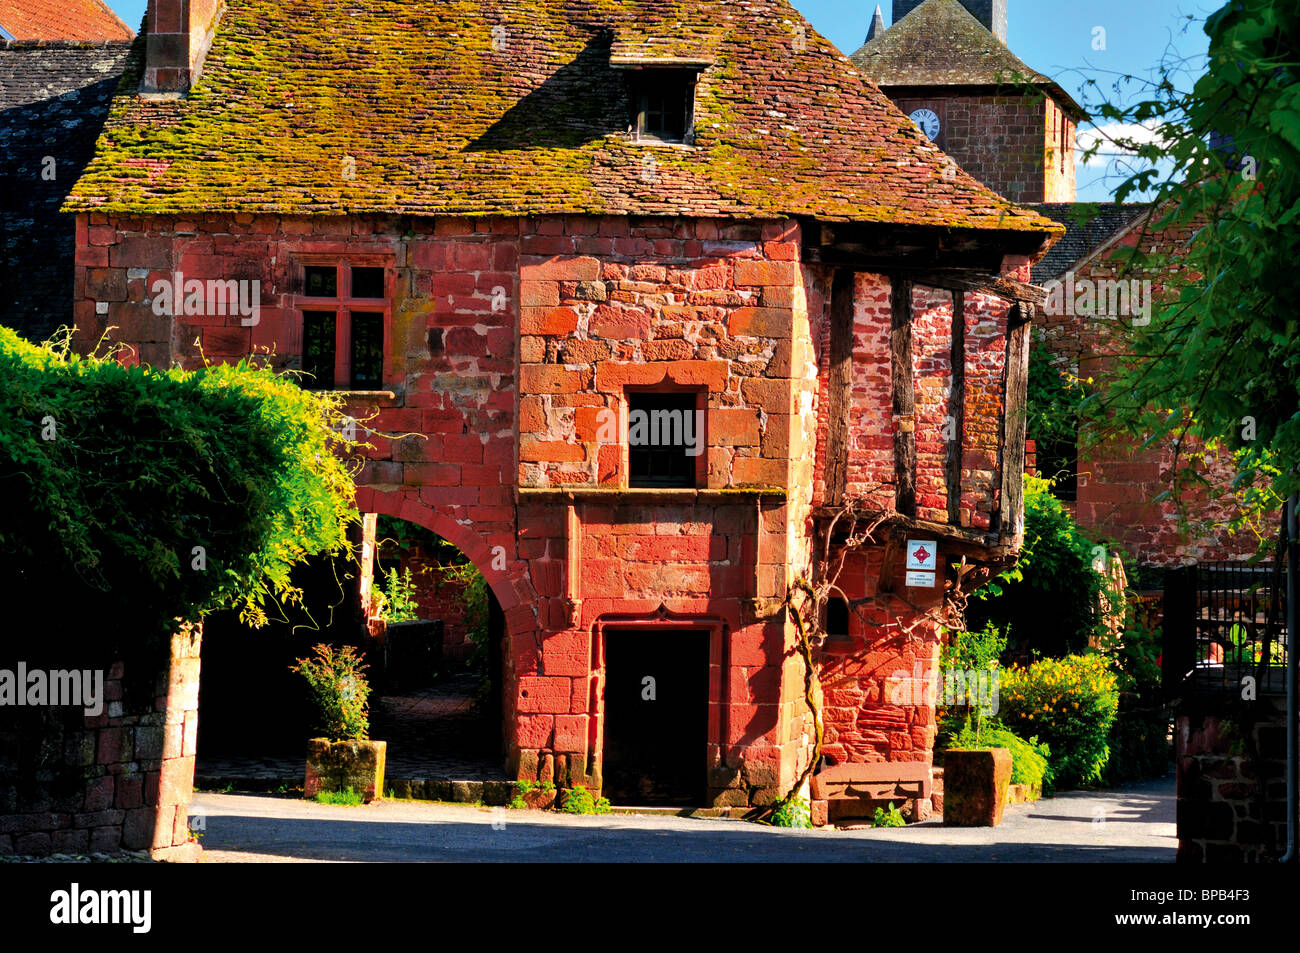 France: Maison de la Sirene  in Collonges-la-Rouge - Stock Image